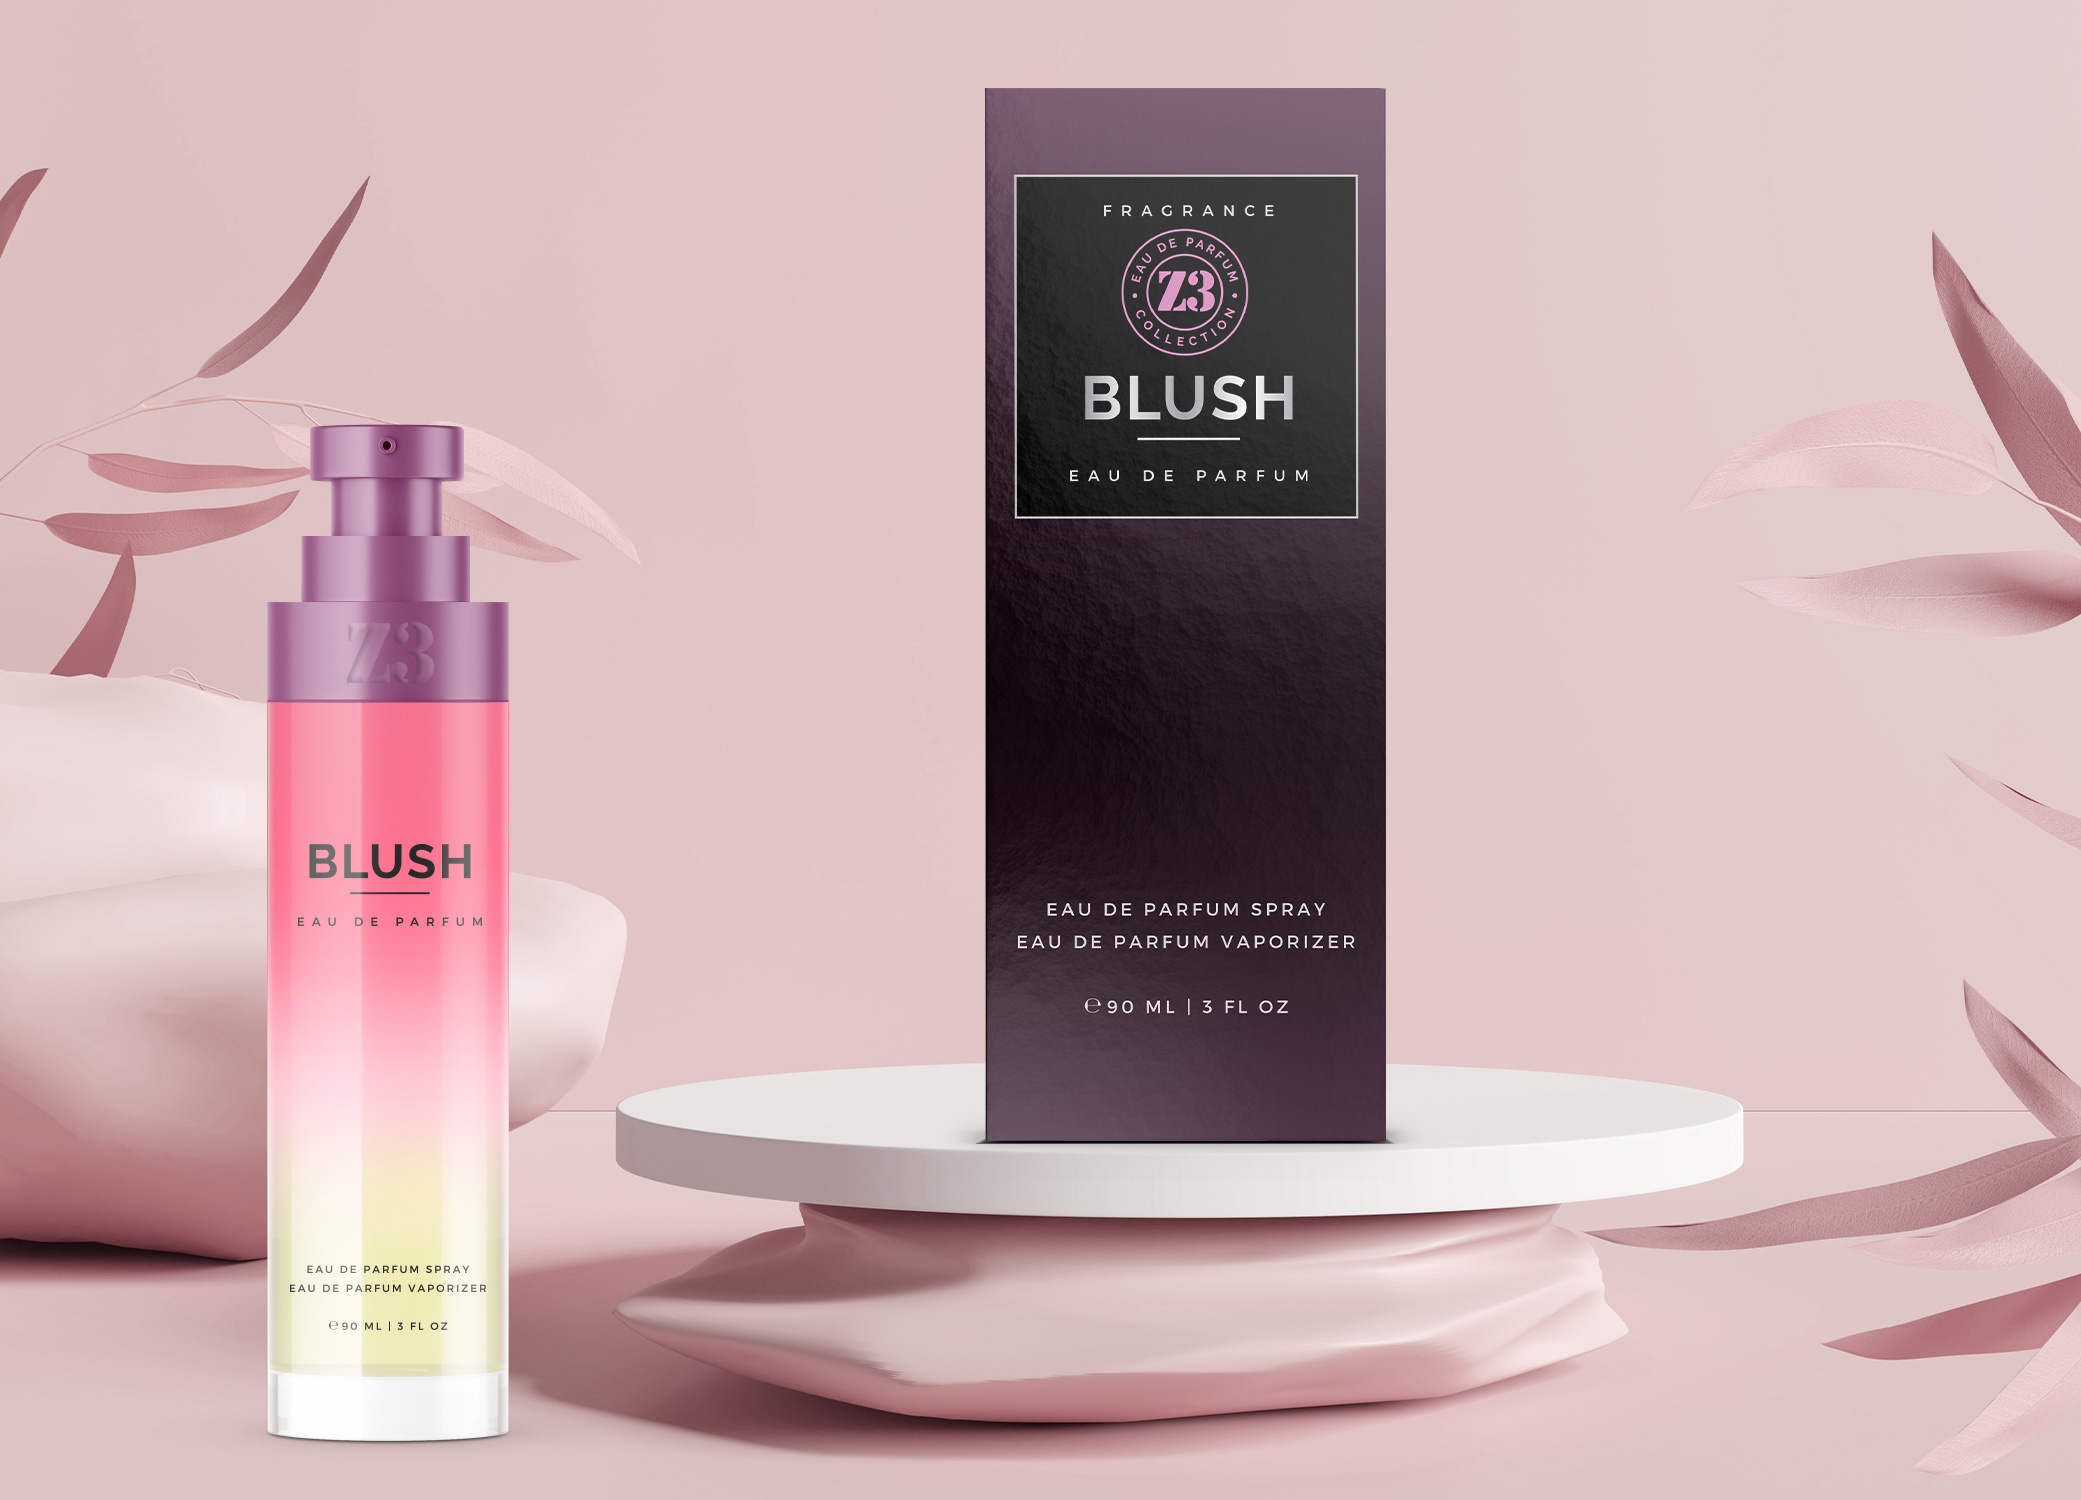 YZY Perfume women's fragrance bottle and package design in pink and purple ombre for Z3 Blush product.